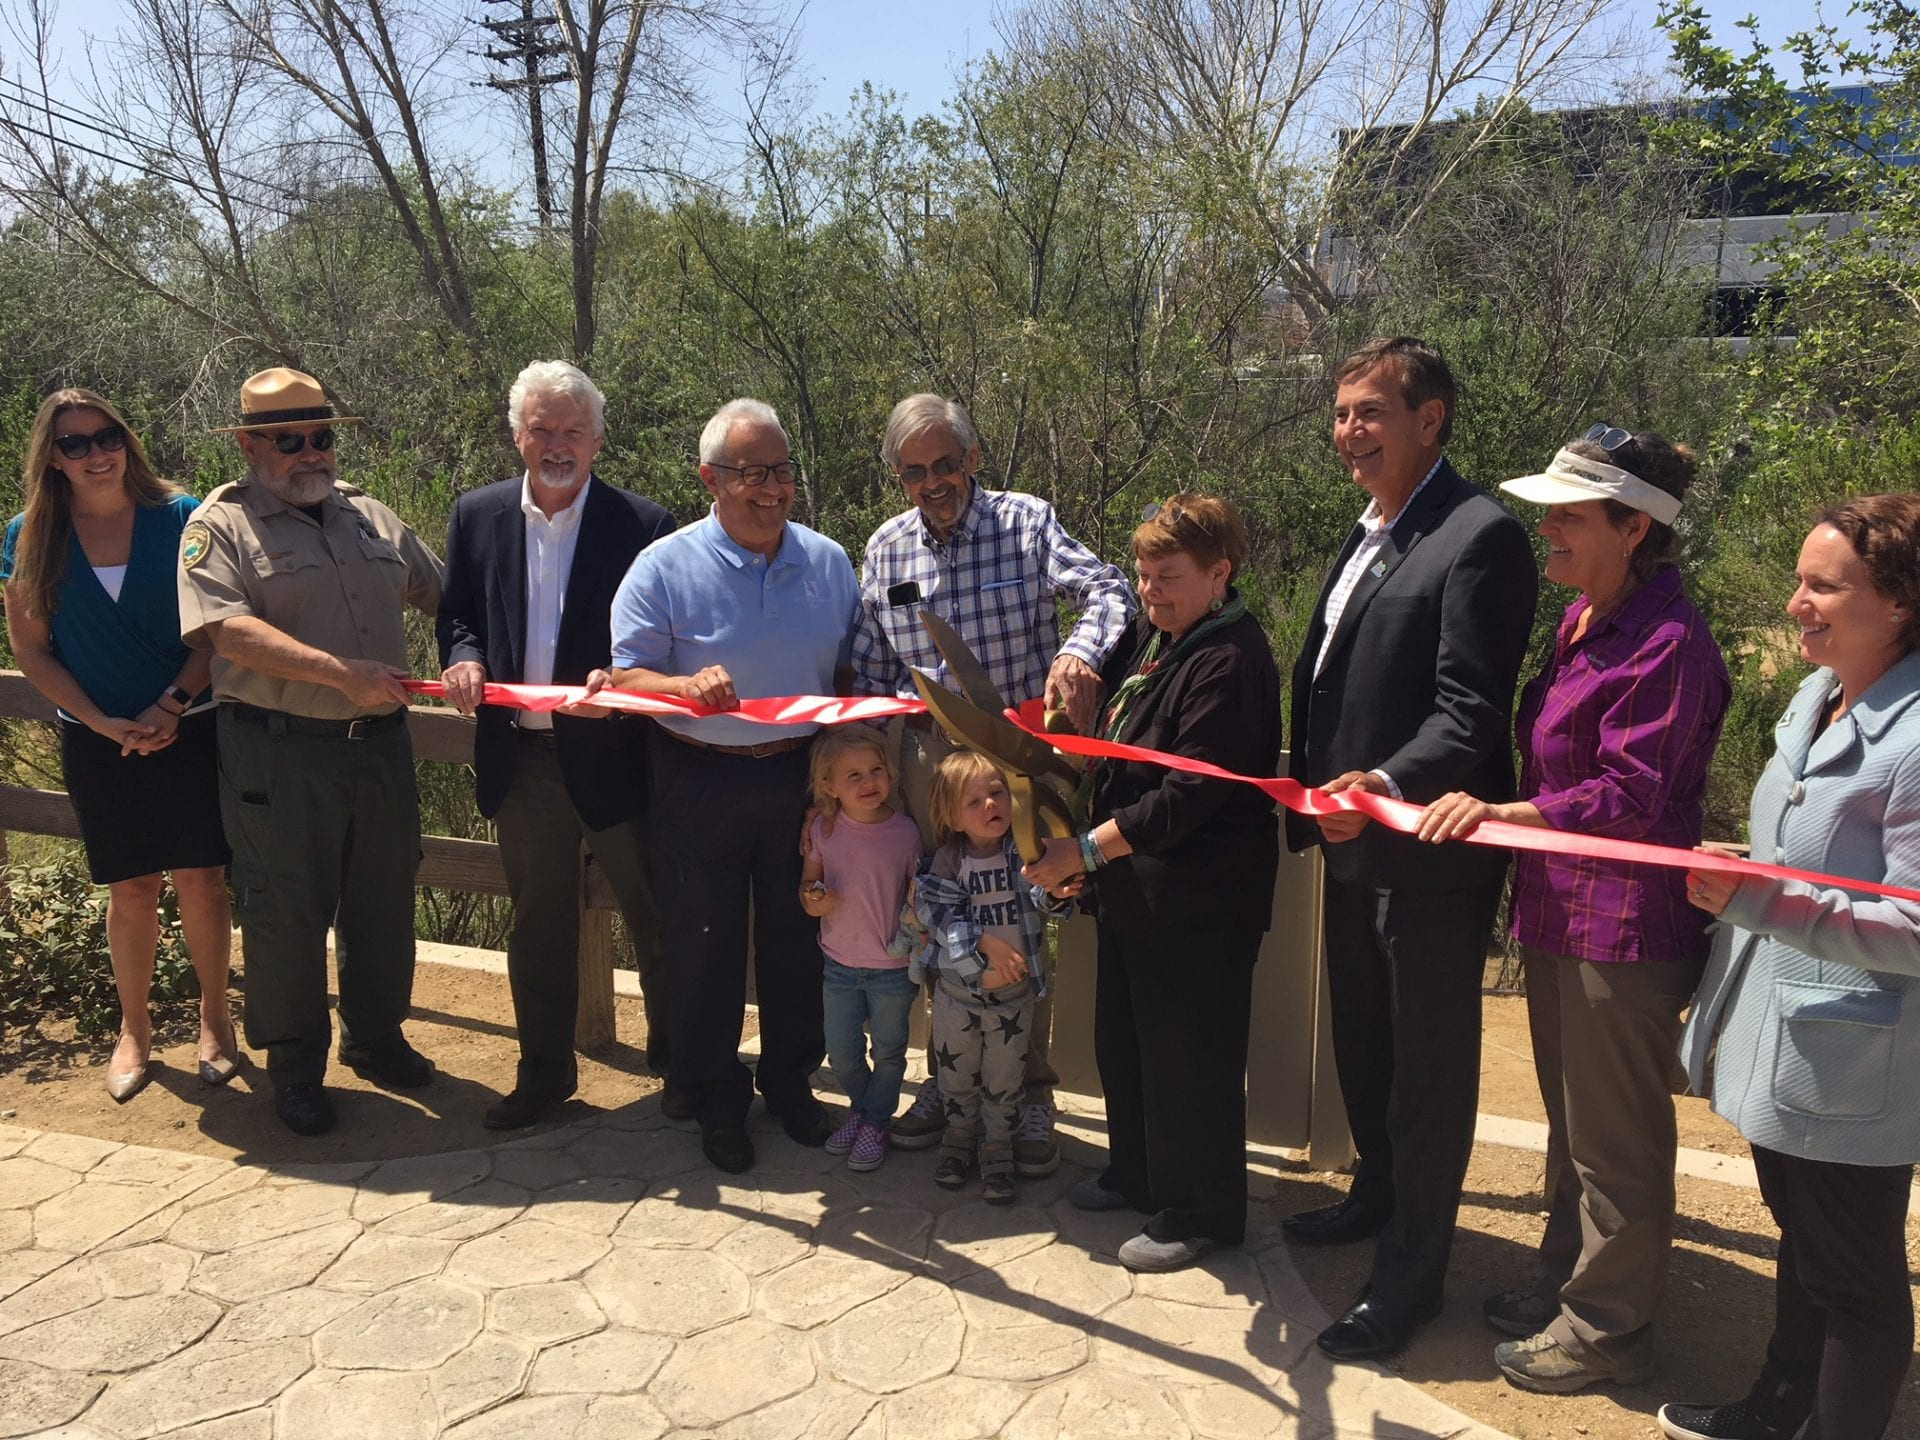 A picture of OHV grand opening with the ribbon cutting and people.